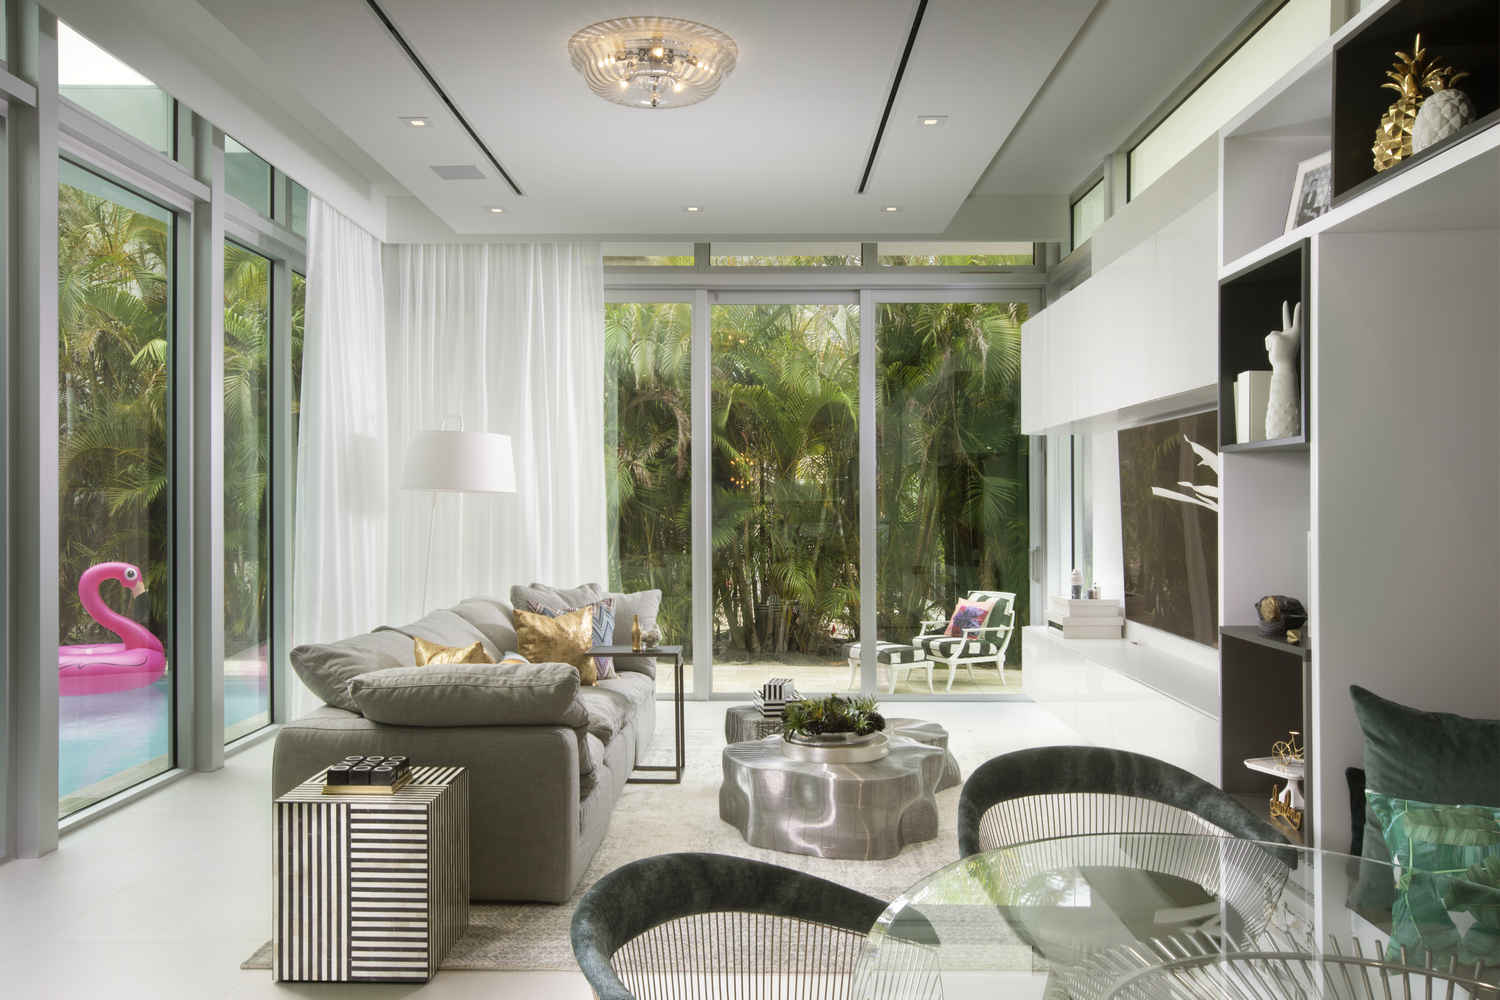 Discover The Most Incredible Top 20 Interior Designers From Miami top 20 interior designers Discover The Most Incredible Top 20 Interior Designers From Miami 12 interior design bal harbour dkorinteriors